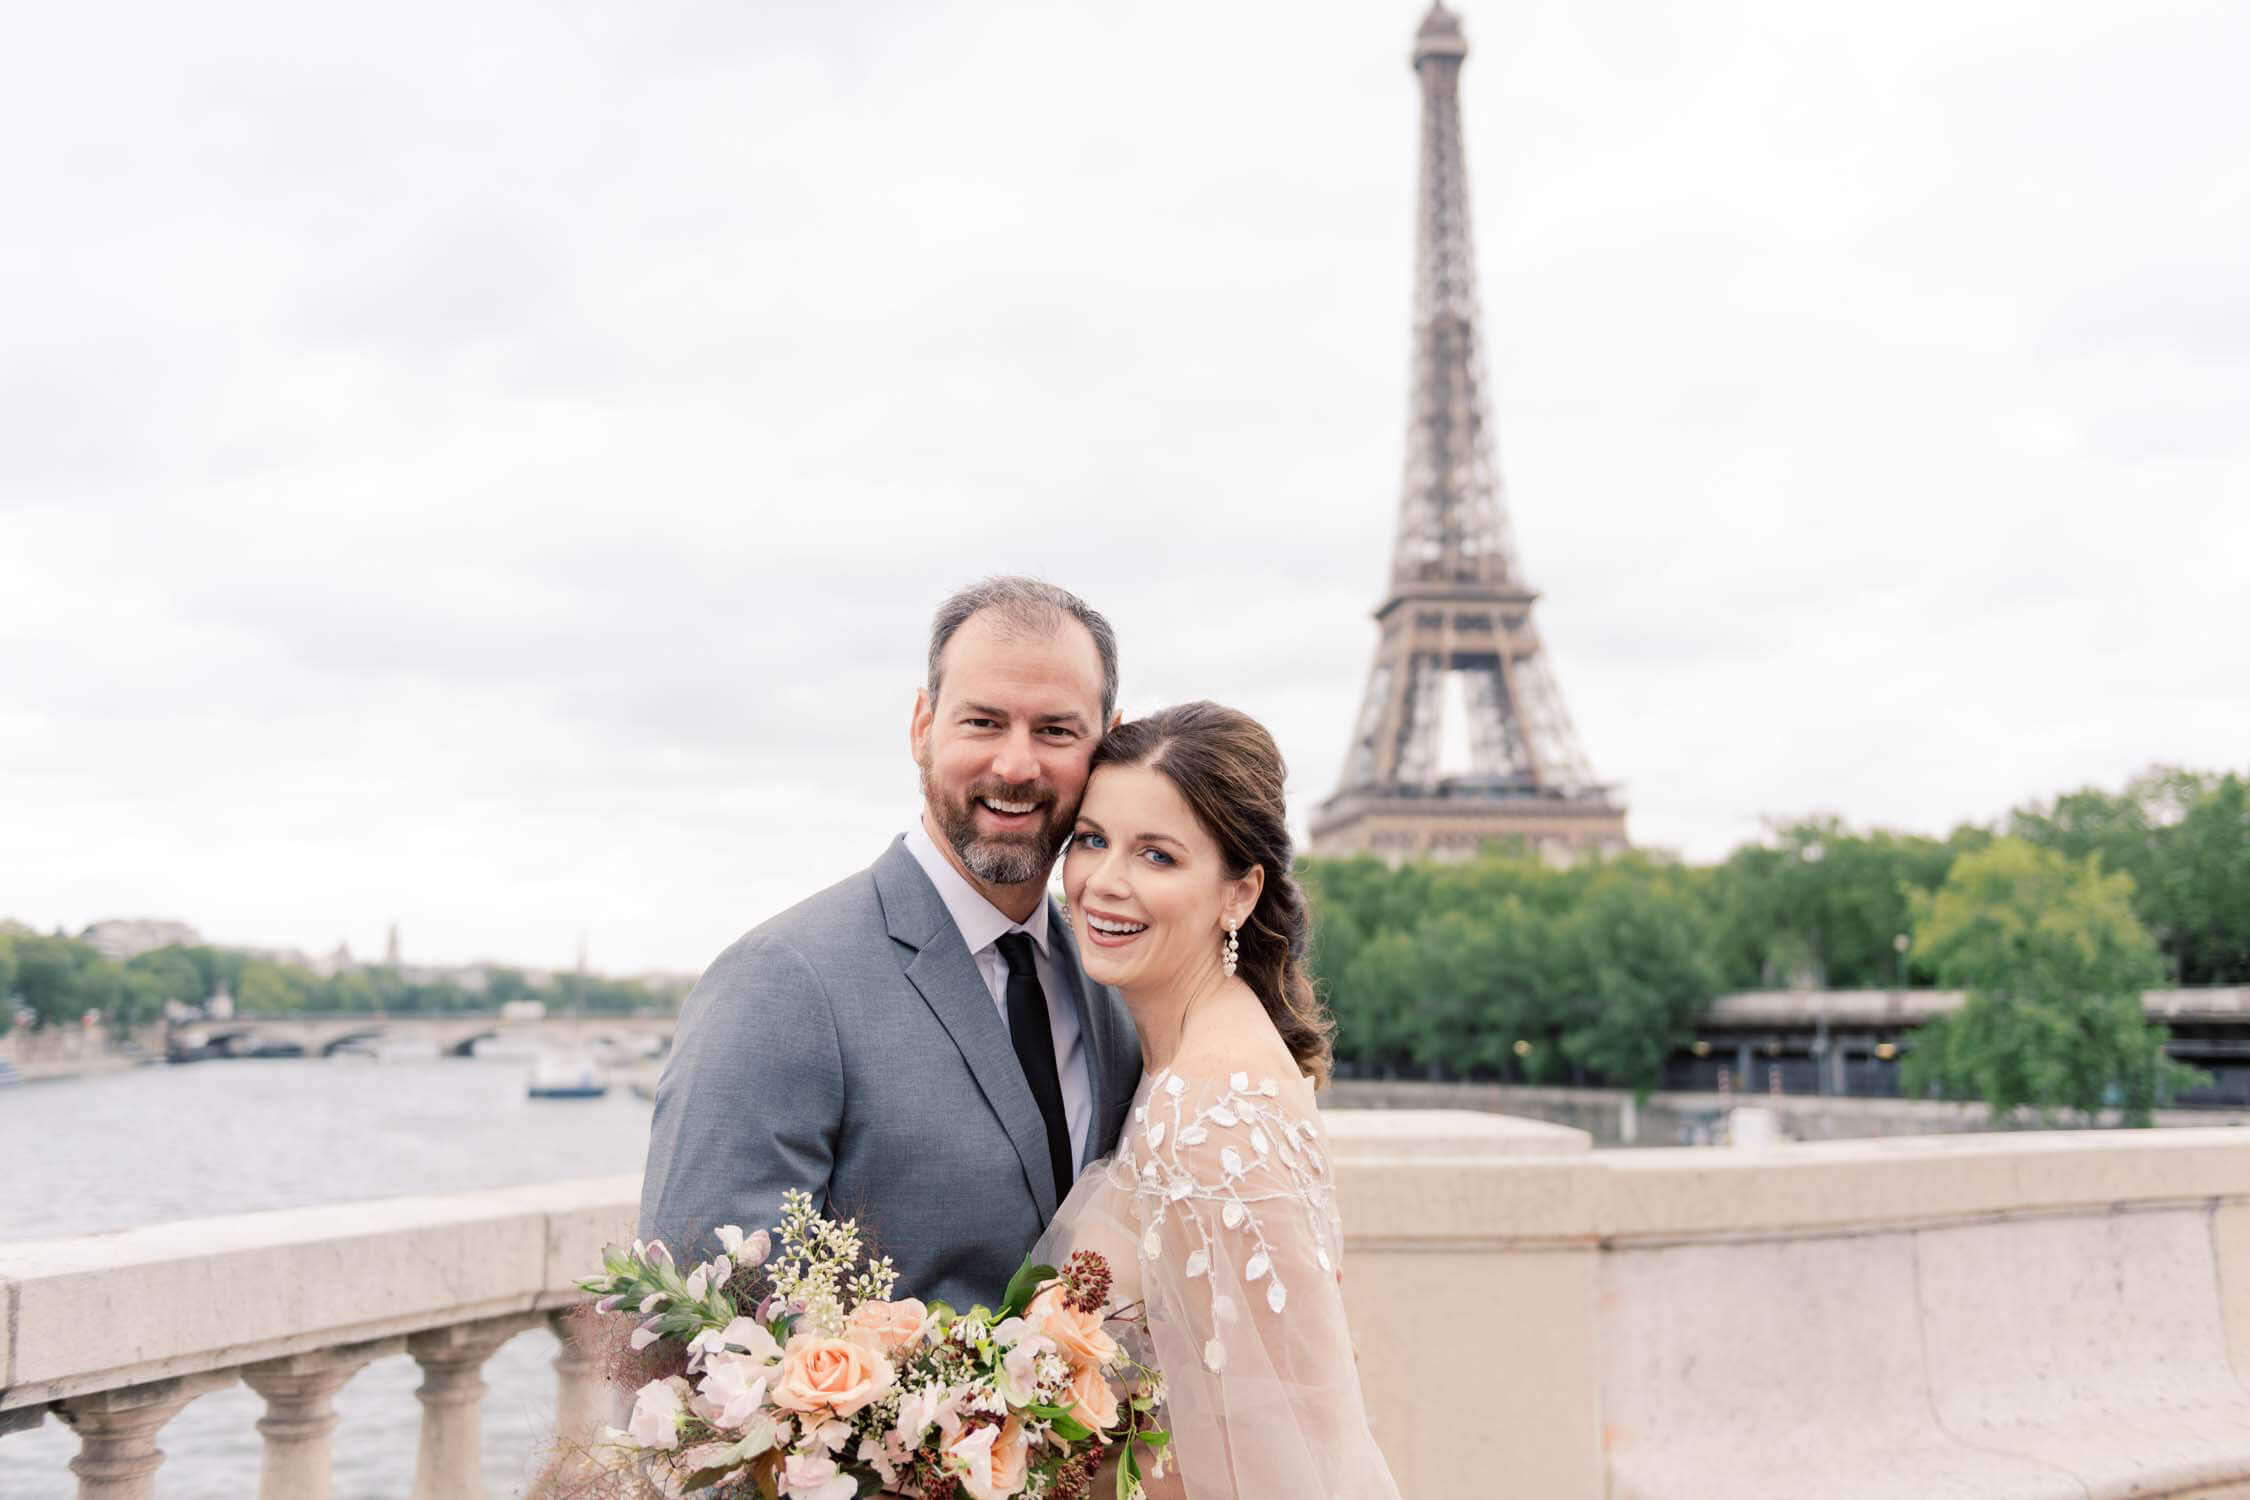 A bride and groom in front of the Eiffel Tower during their elopement in Paris